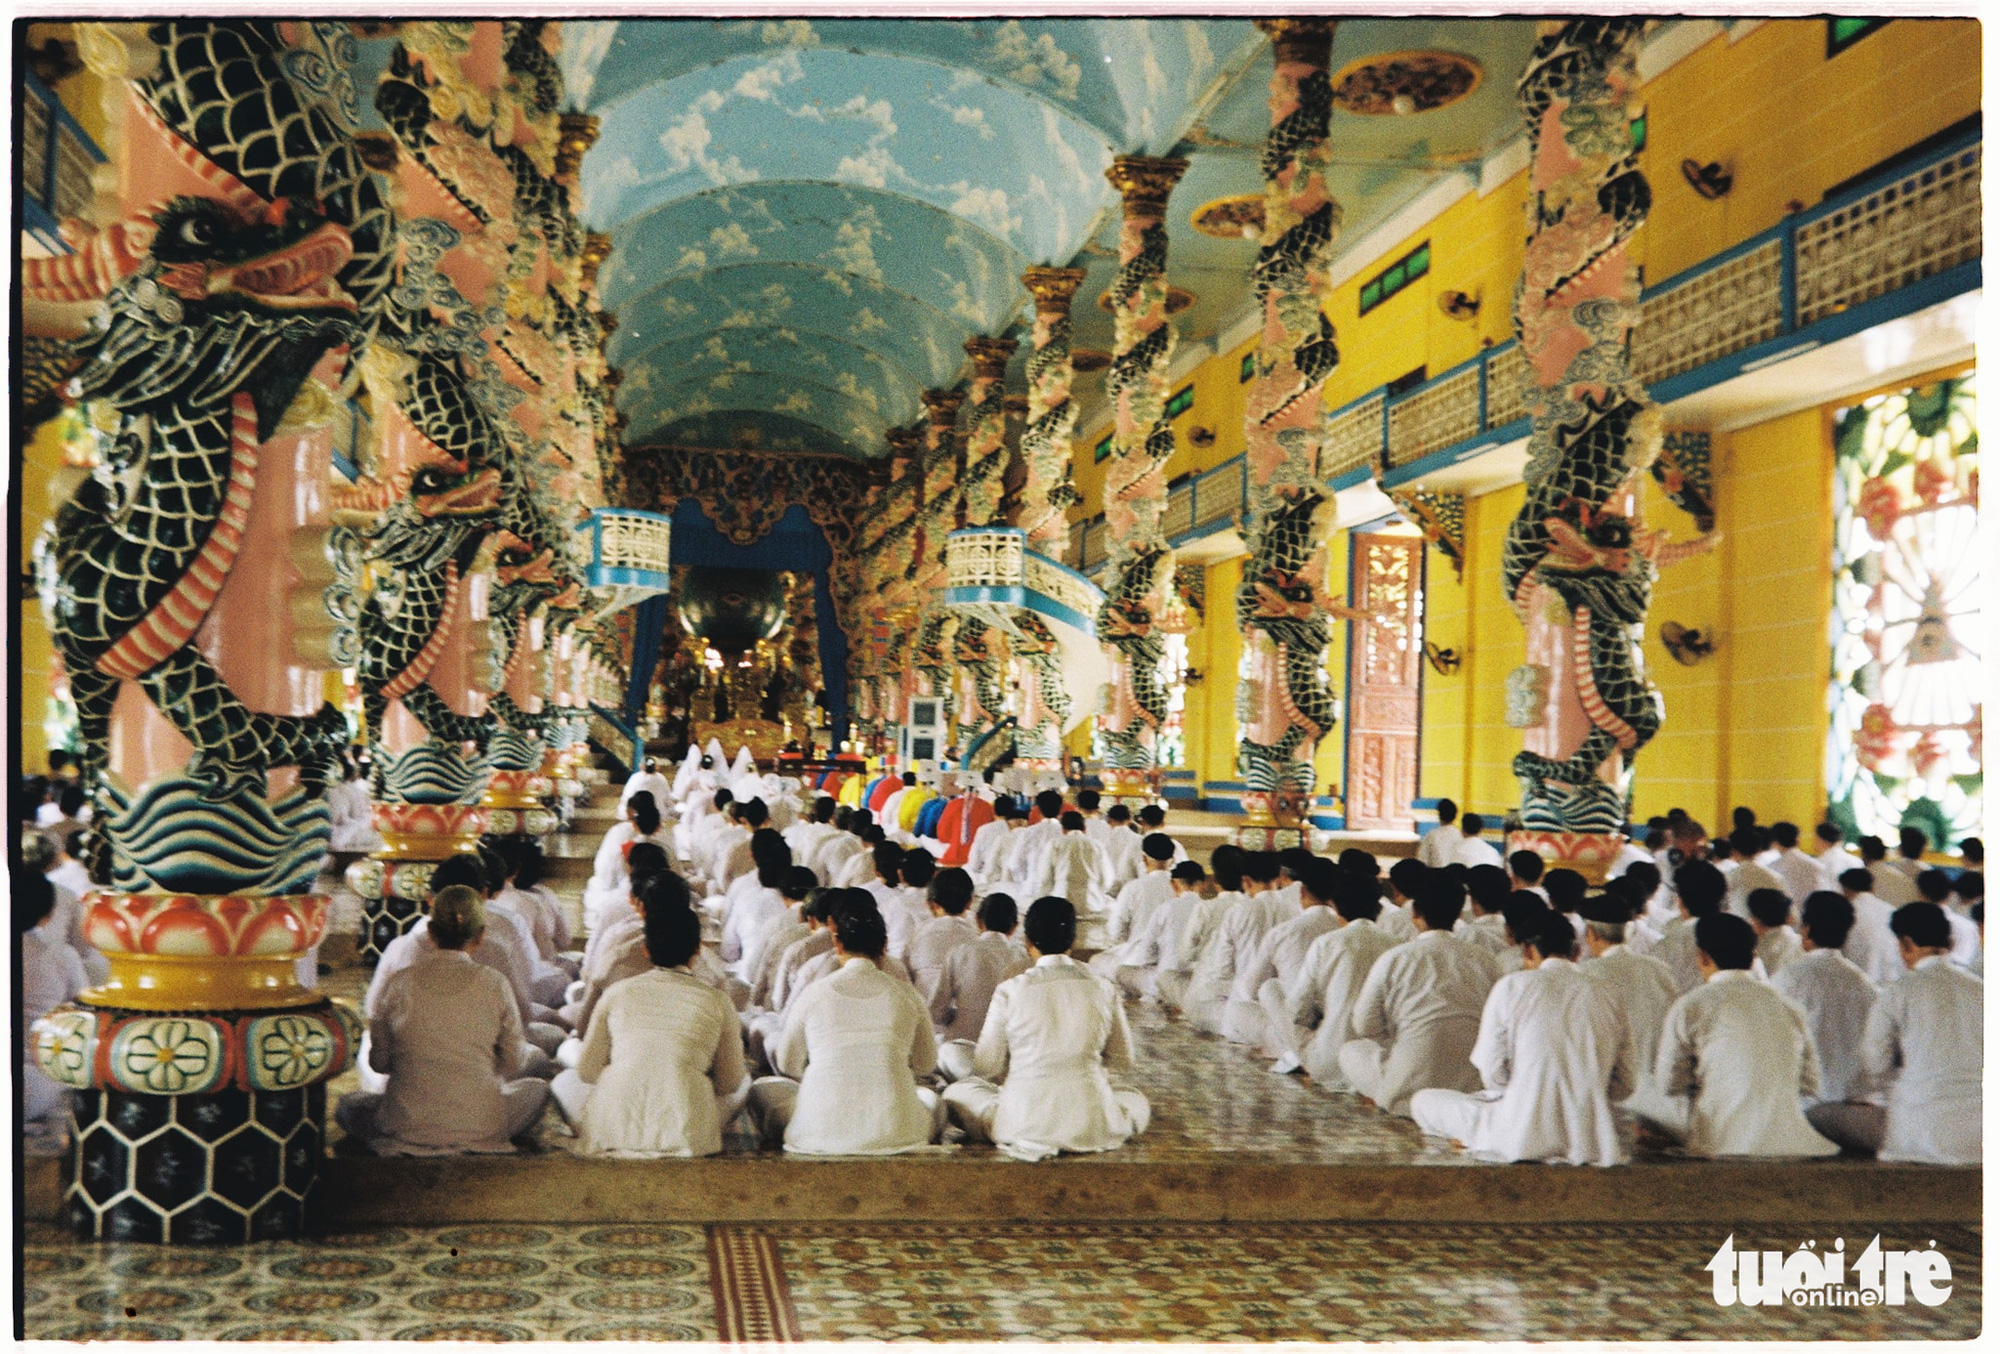 During services, only Caodaism followers are allowed to enter the central chamber of the Cao Dai Holy See in Tay Ninh Province, Vietnam. Photo: Mai Thuong / Tuoi Tre